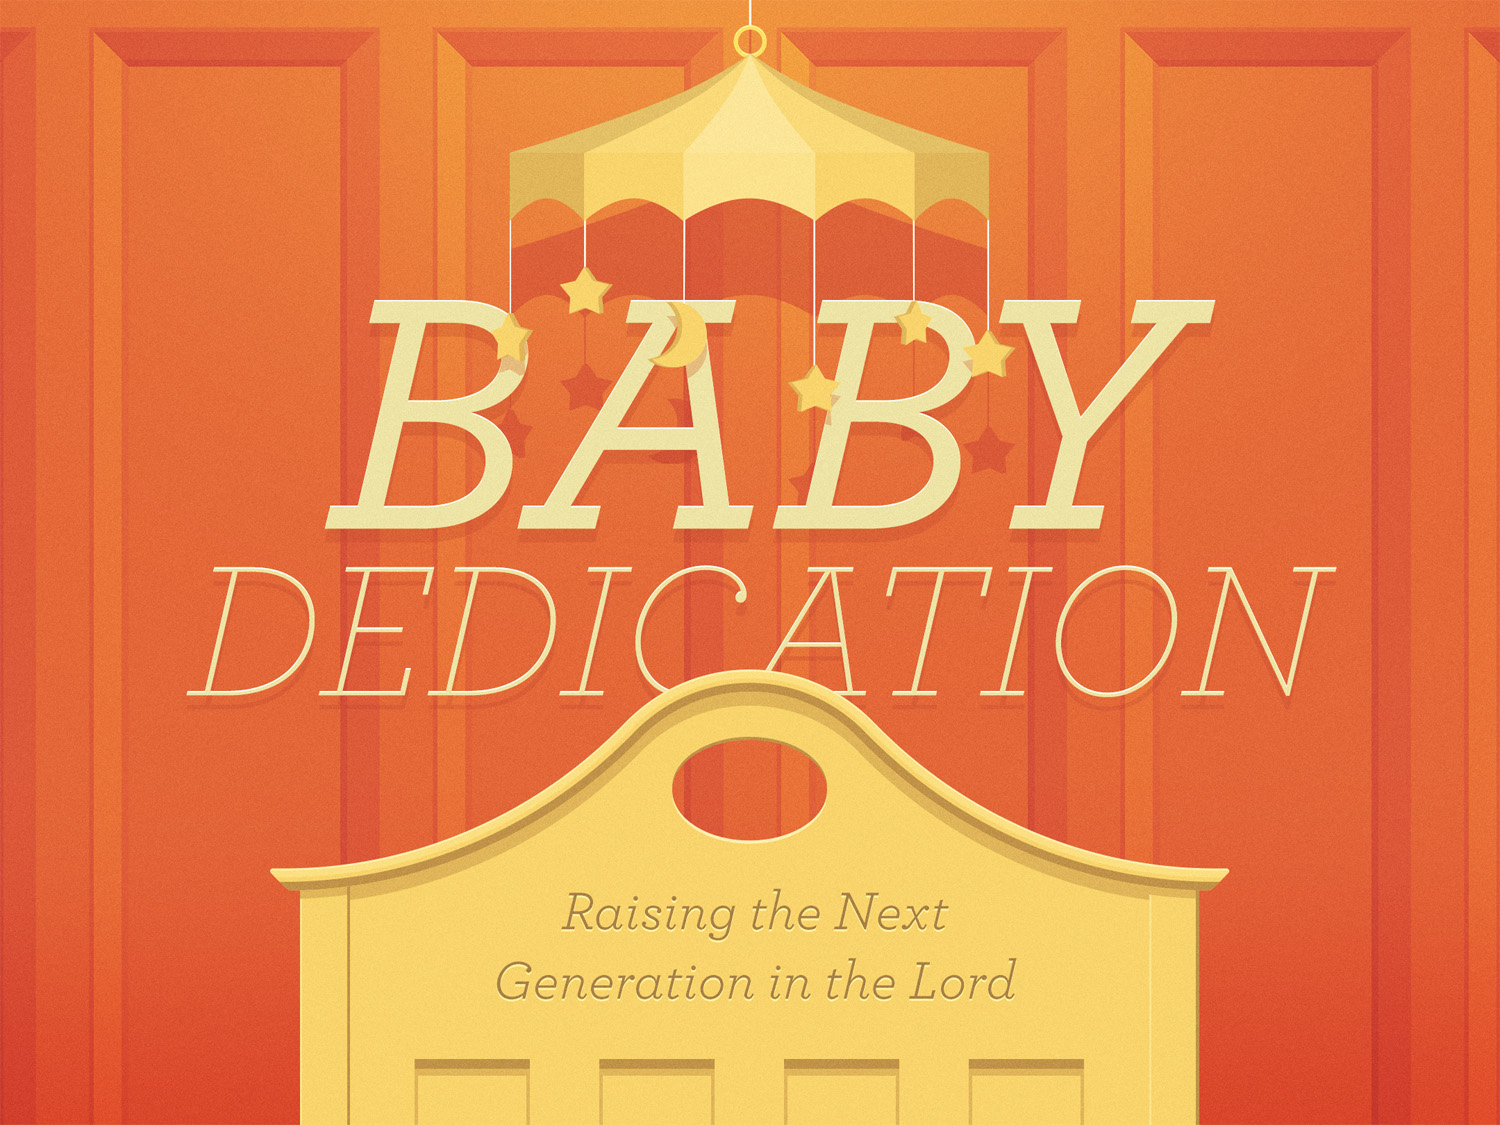 Baby dedication title 1 still 4x3